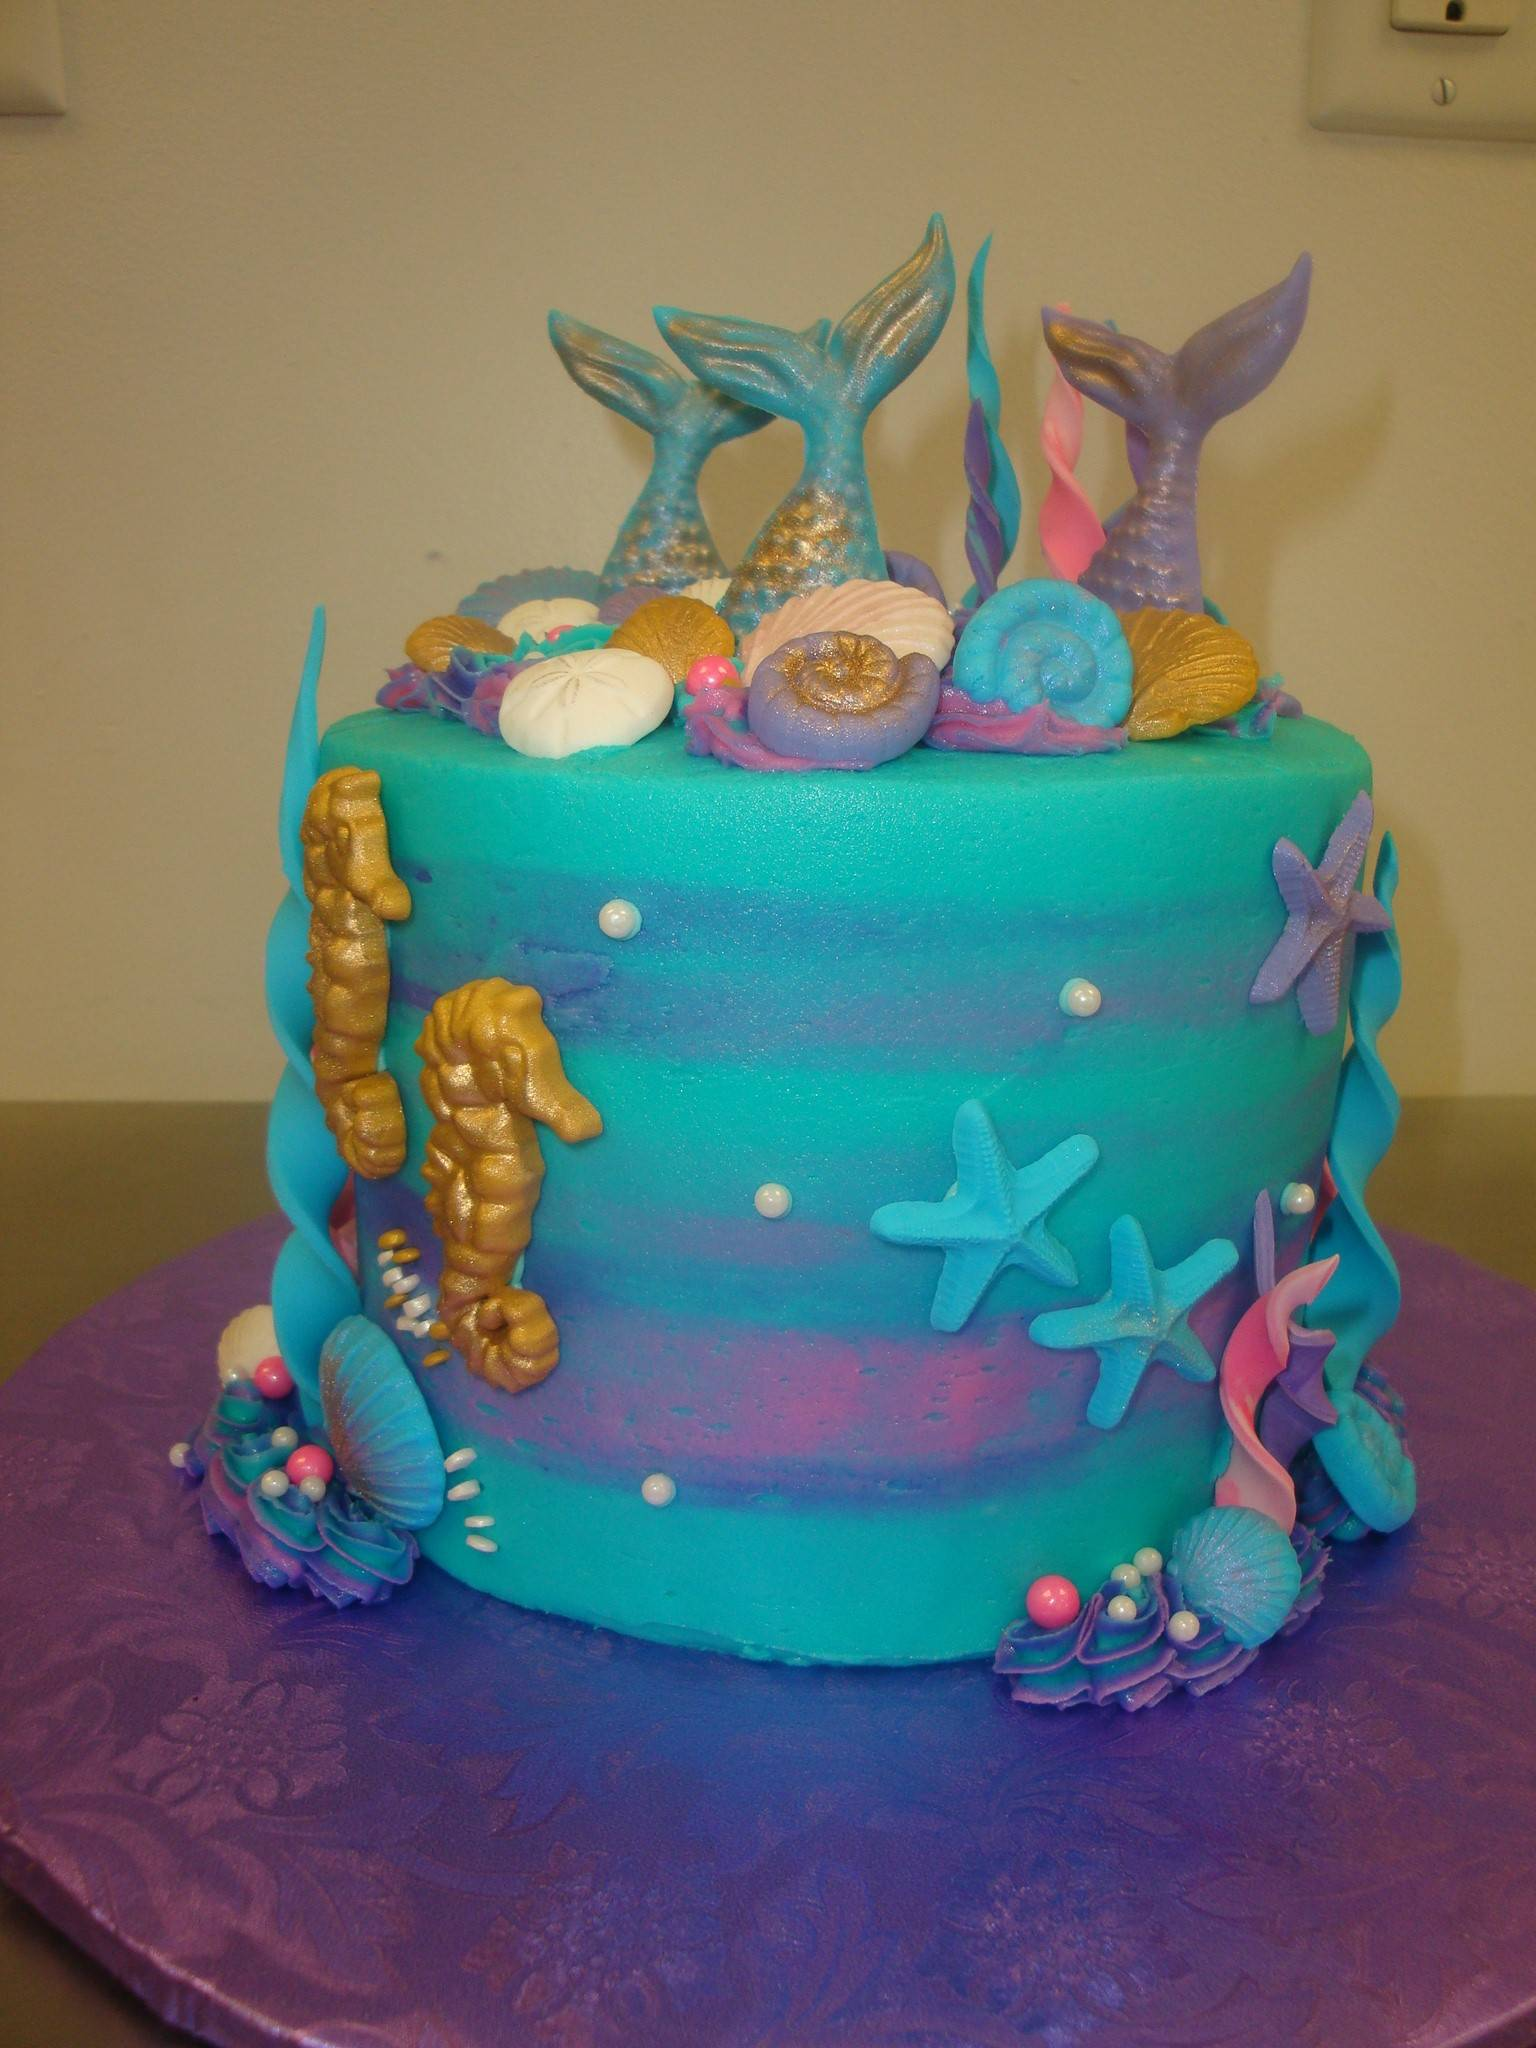 6 inch mermaid tail and friends $85